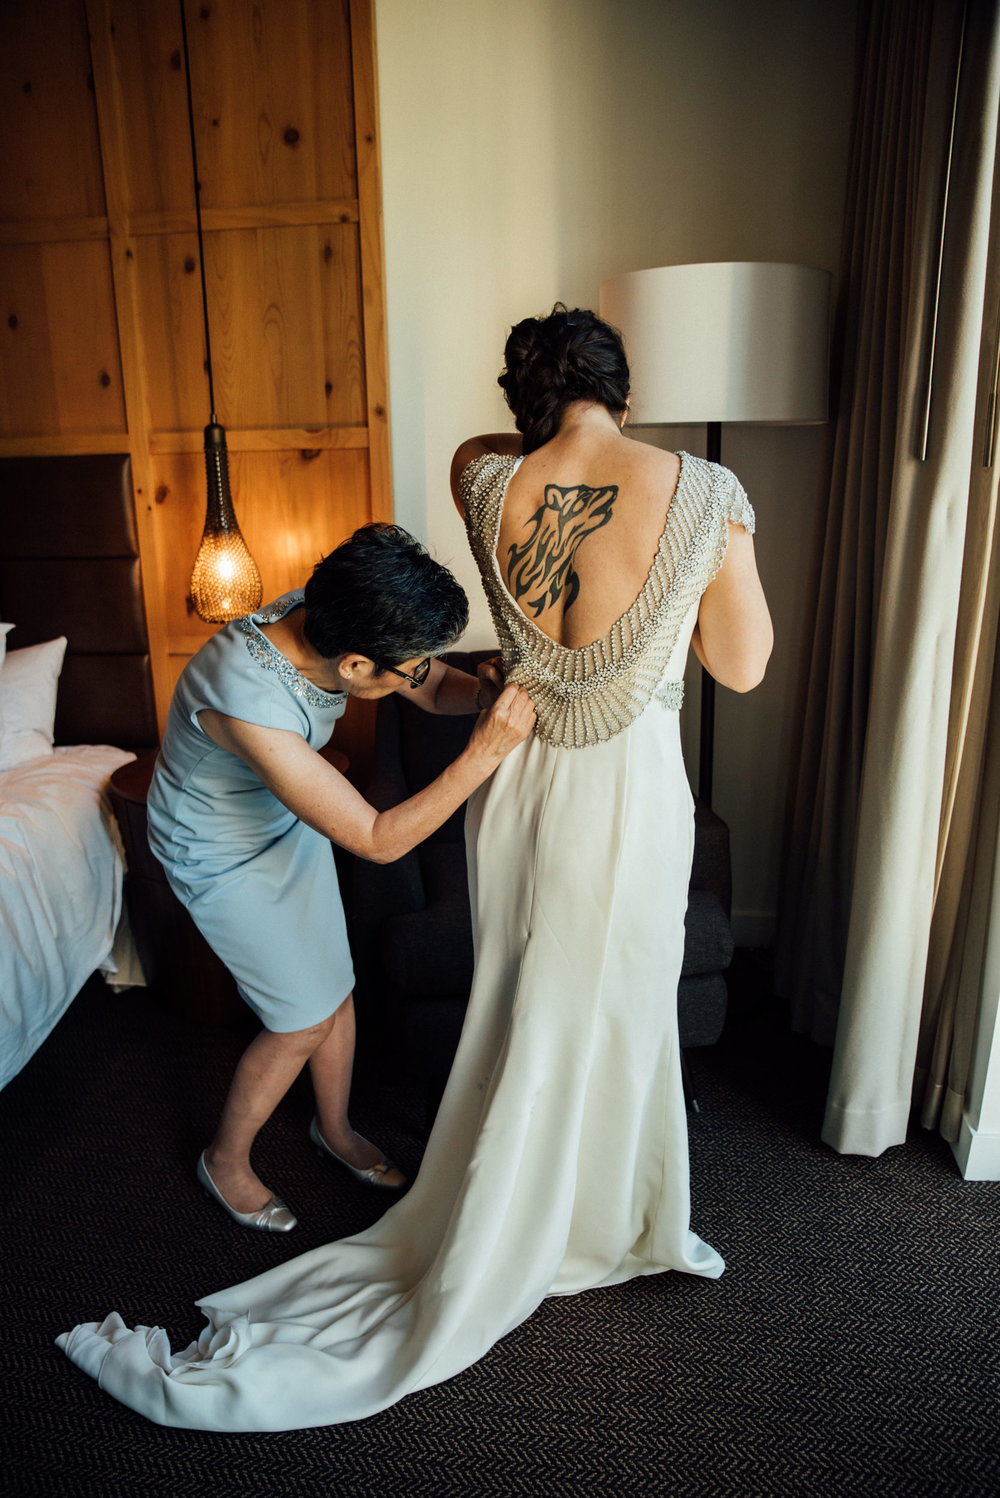 Colorado Denver Downtown Urban Wedding Colorado Wedding Photographer Mom getting Bride Ready